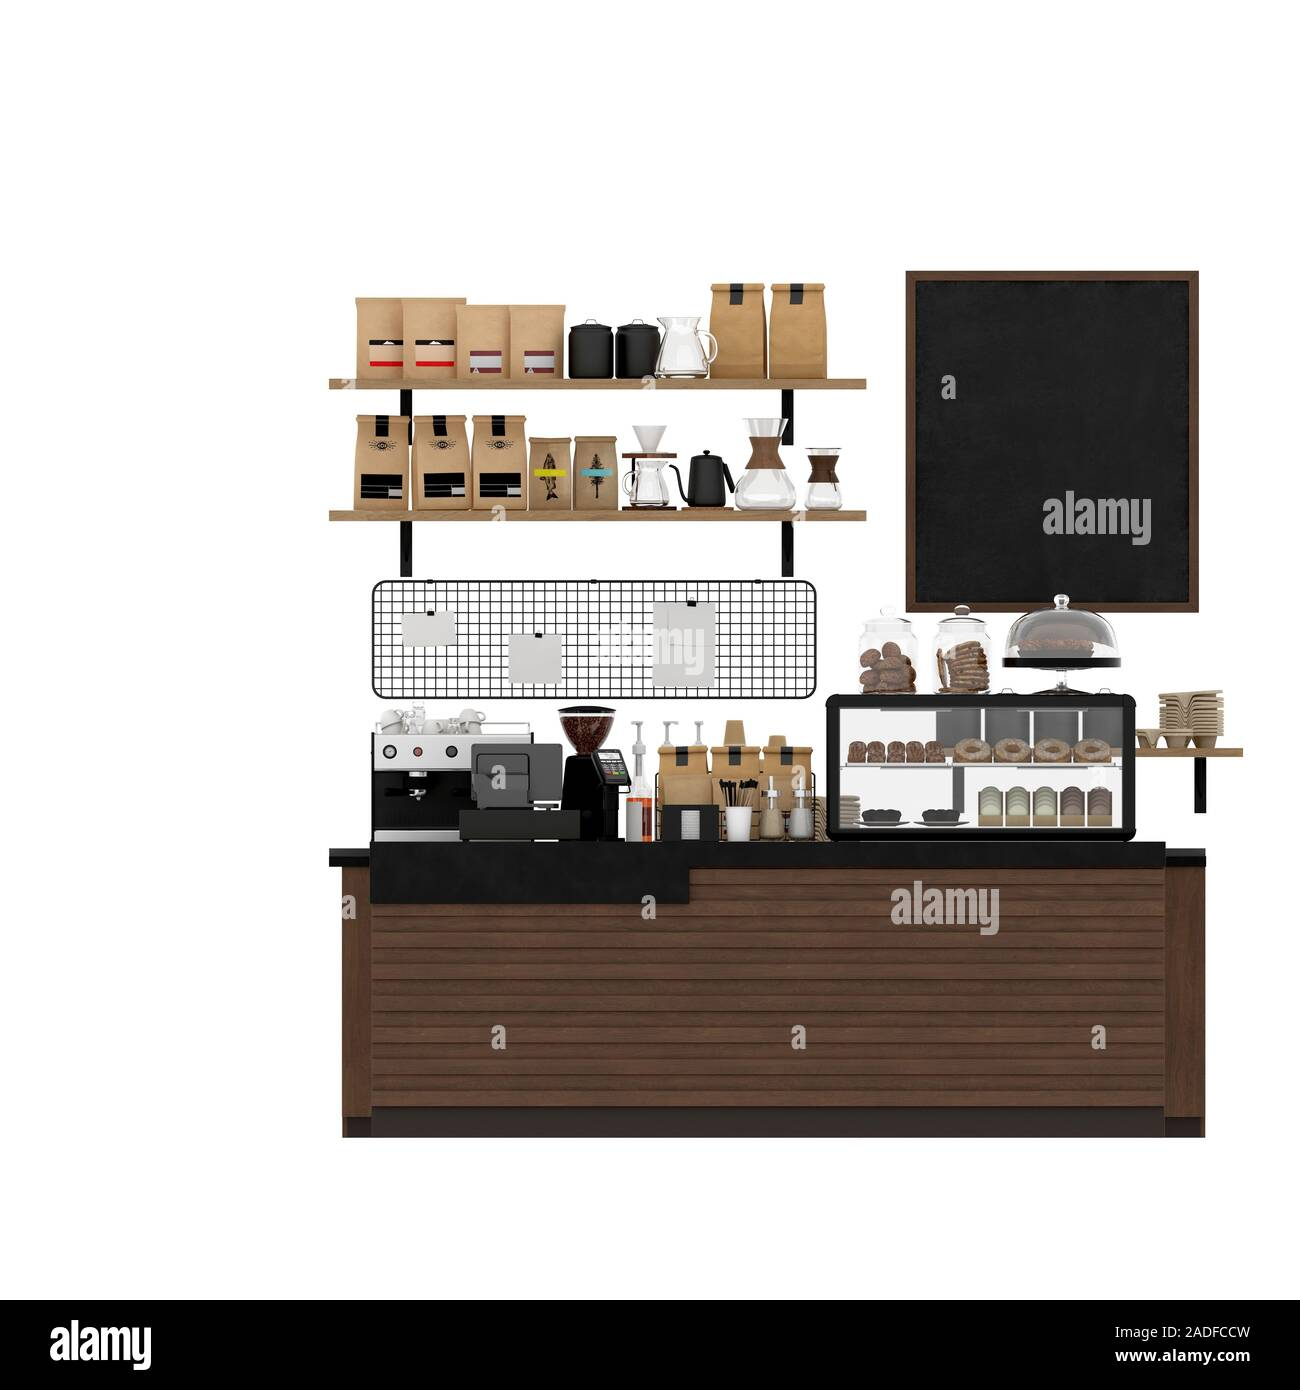 3d Render Cafe Bar Interior High Resolution Stock Photography And Images Alamy